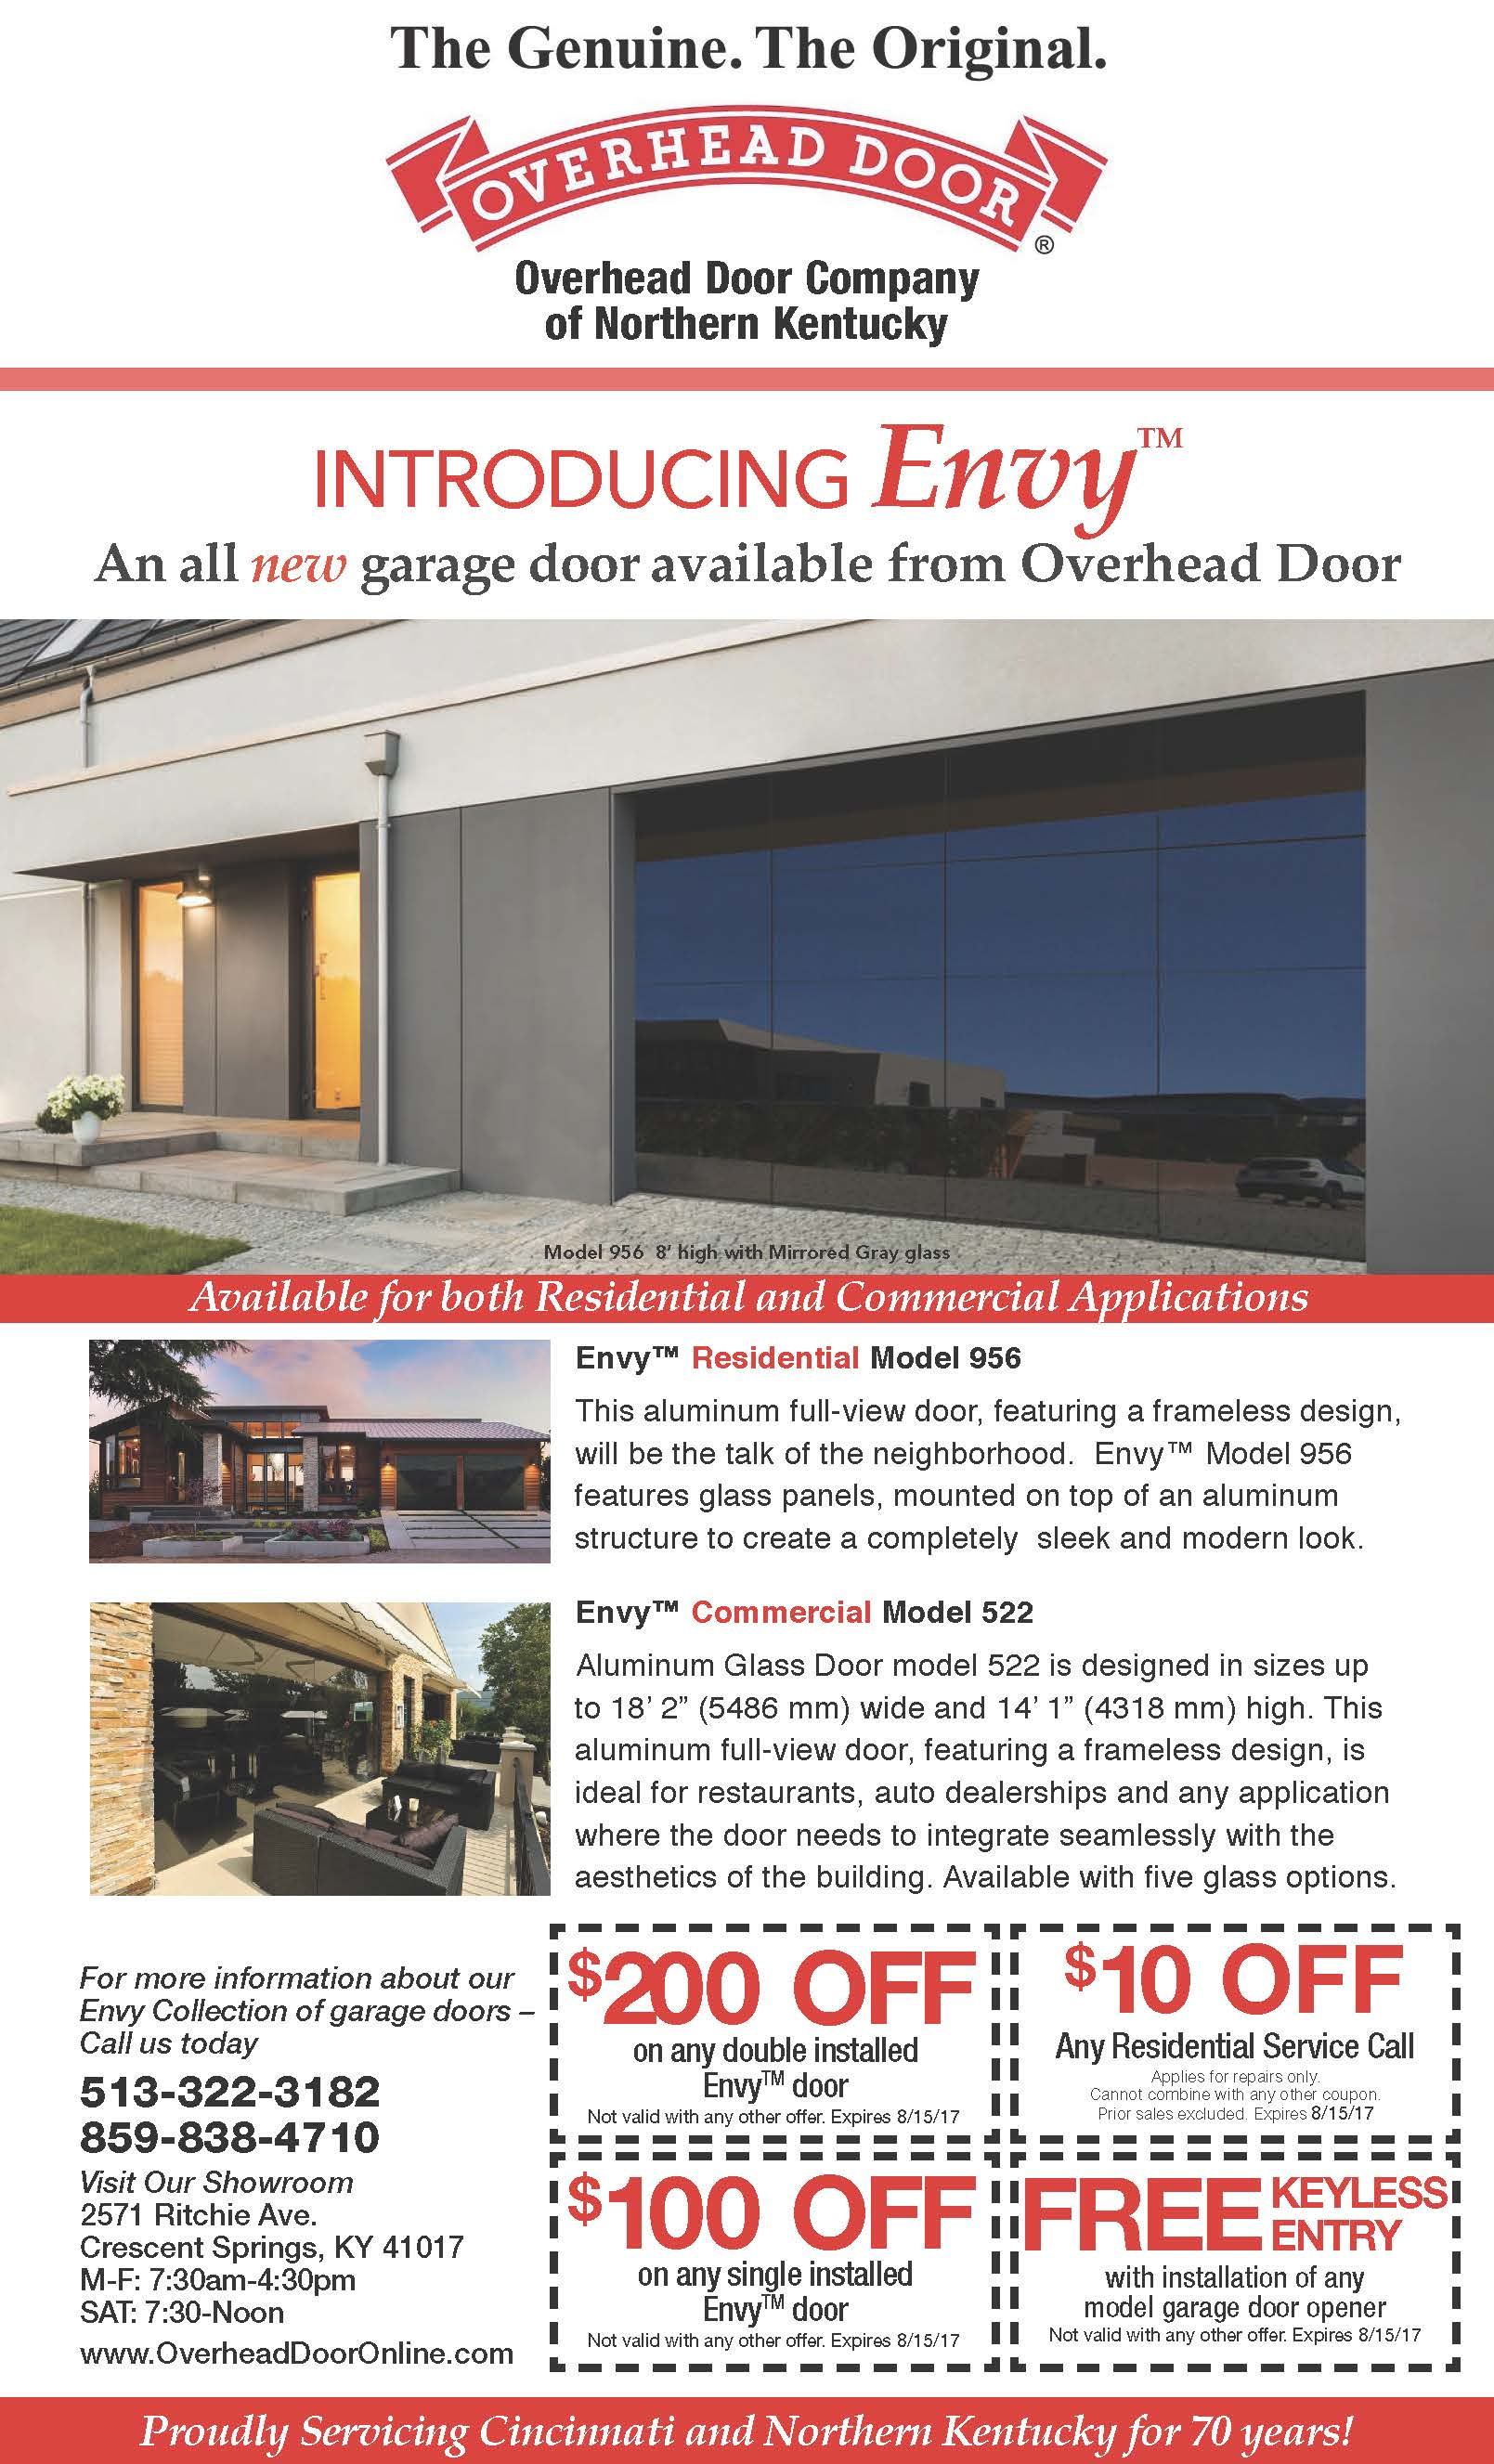 Overhead Door Introduces Envy